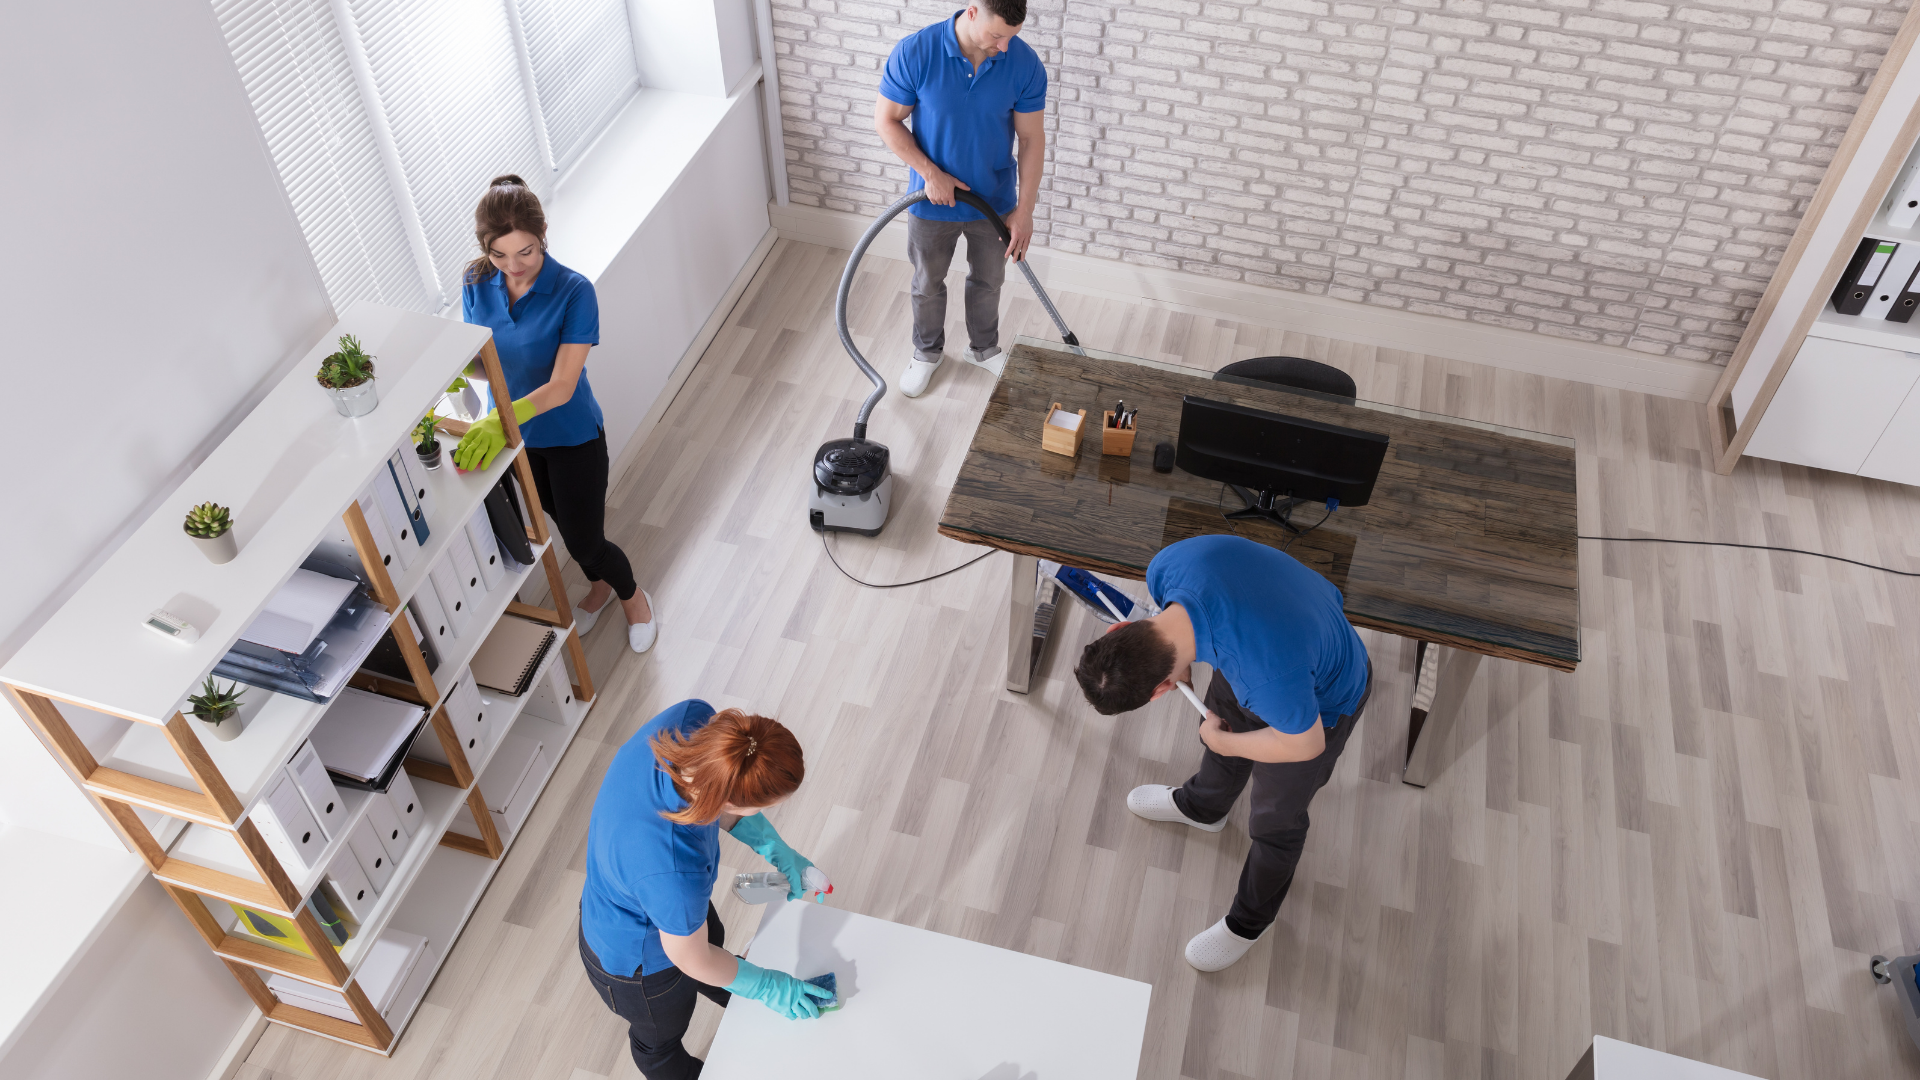 commercial cleaning services auckland kleenco